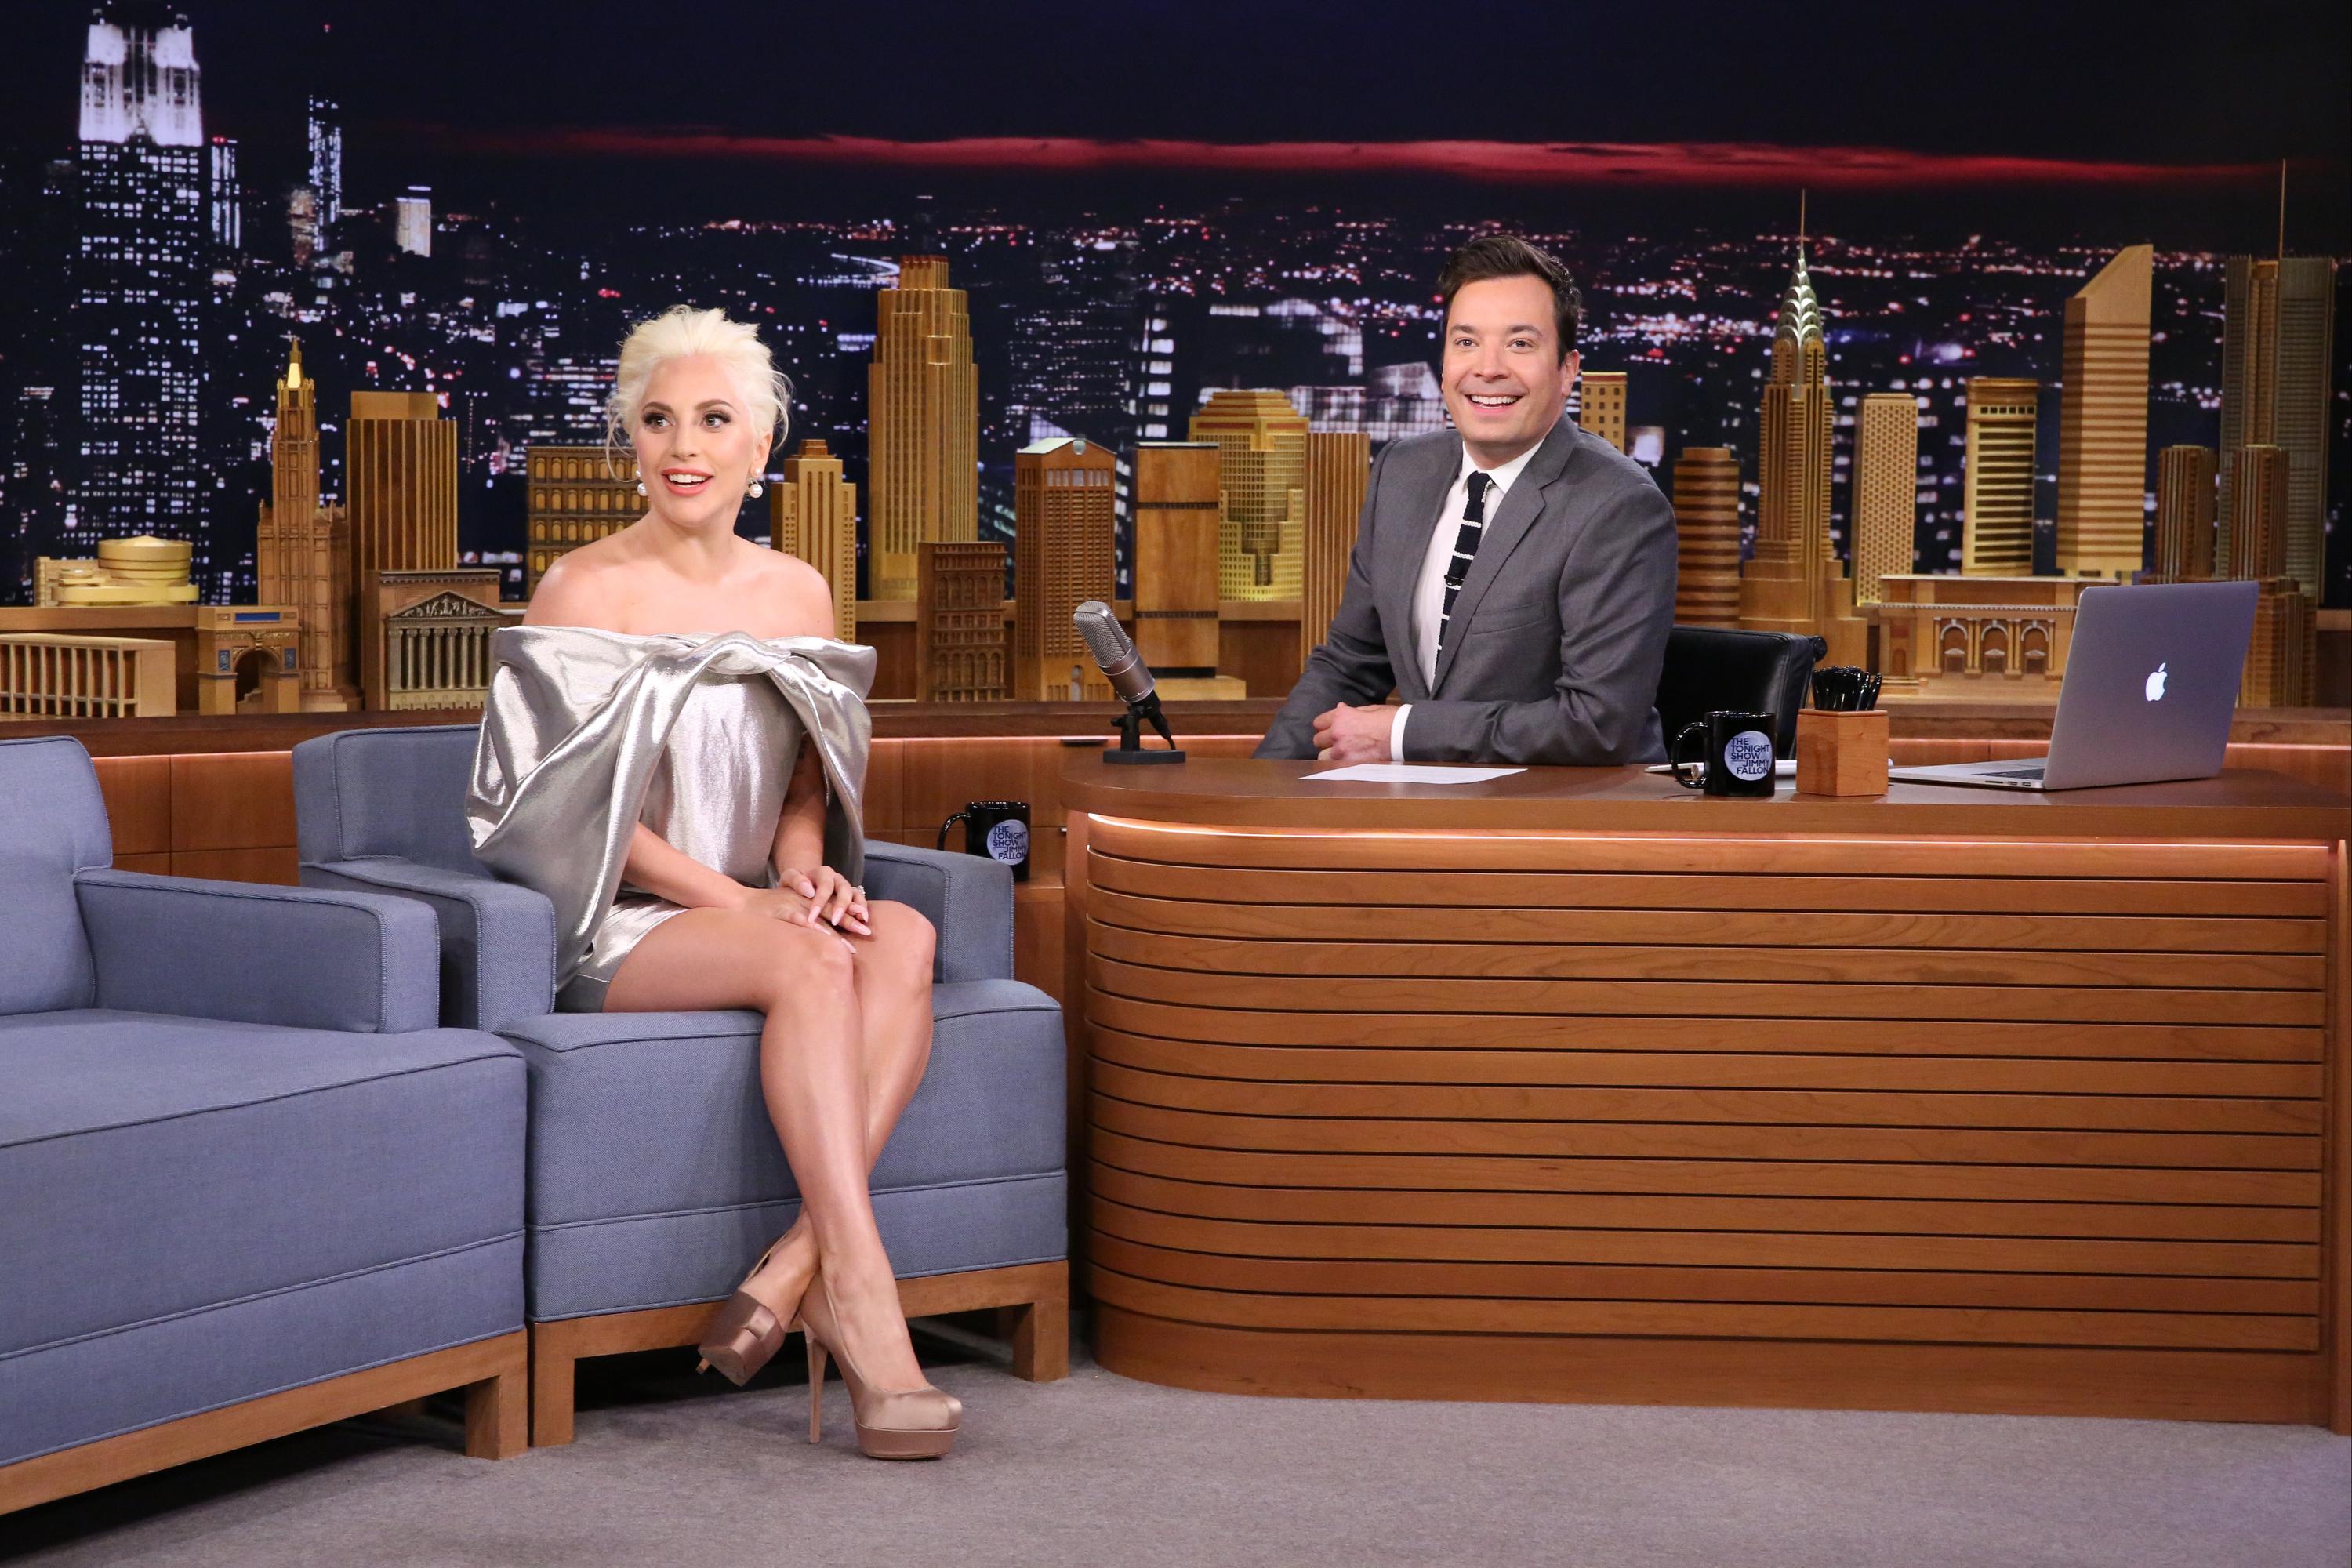 Lady Gaga during an interview with host Jimmy Fallon on Oct. 6, 2015.